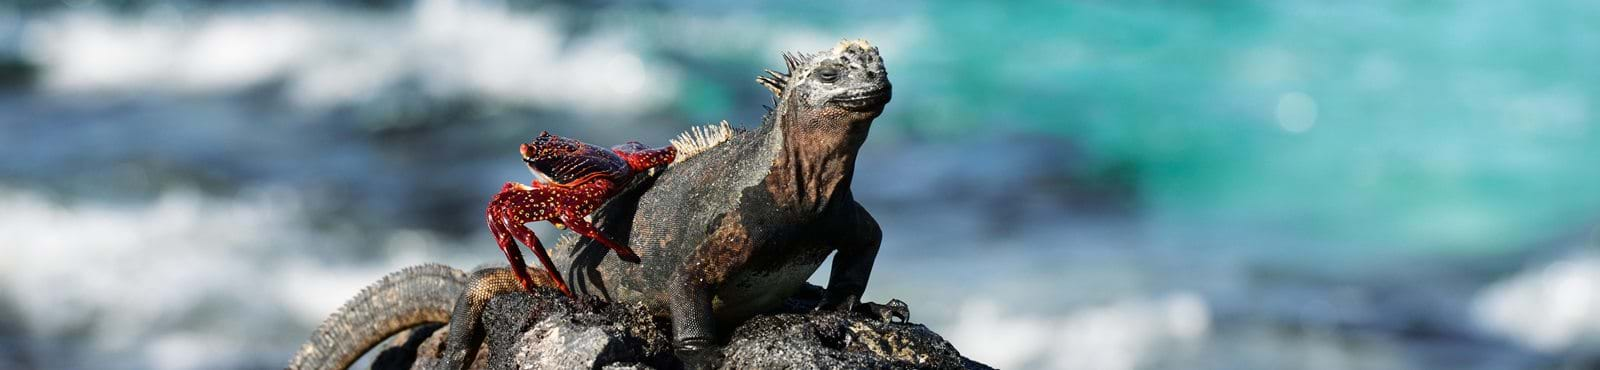 Iguana, Galapagos, Wildlife, Endemic